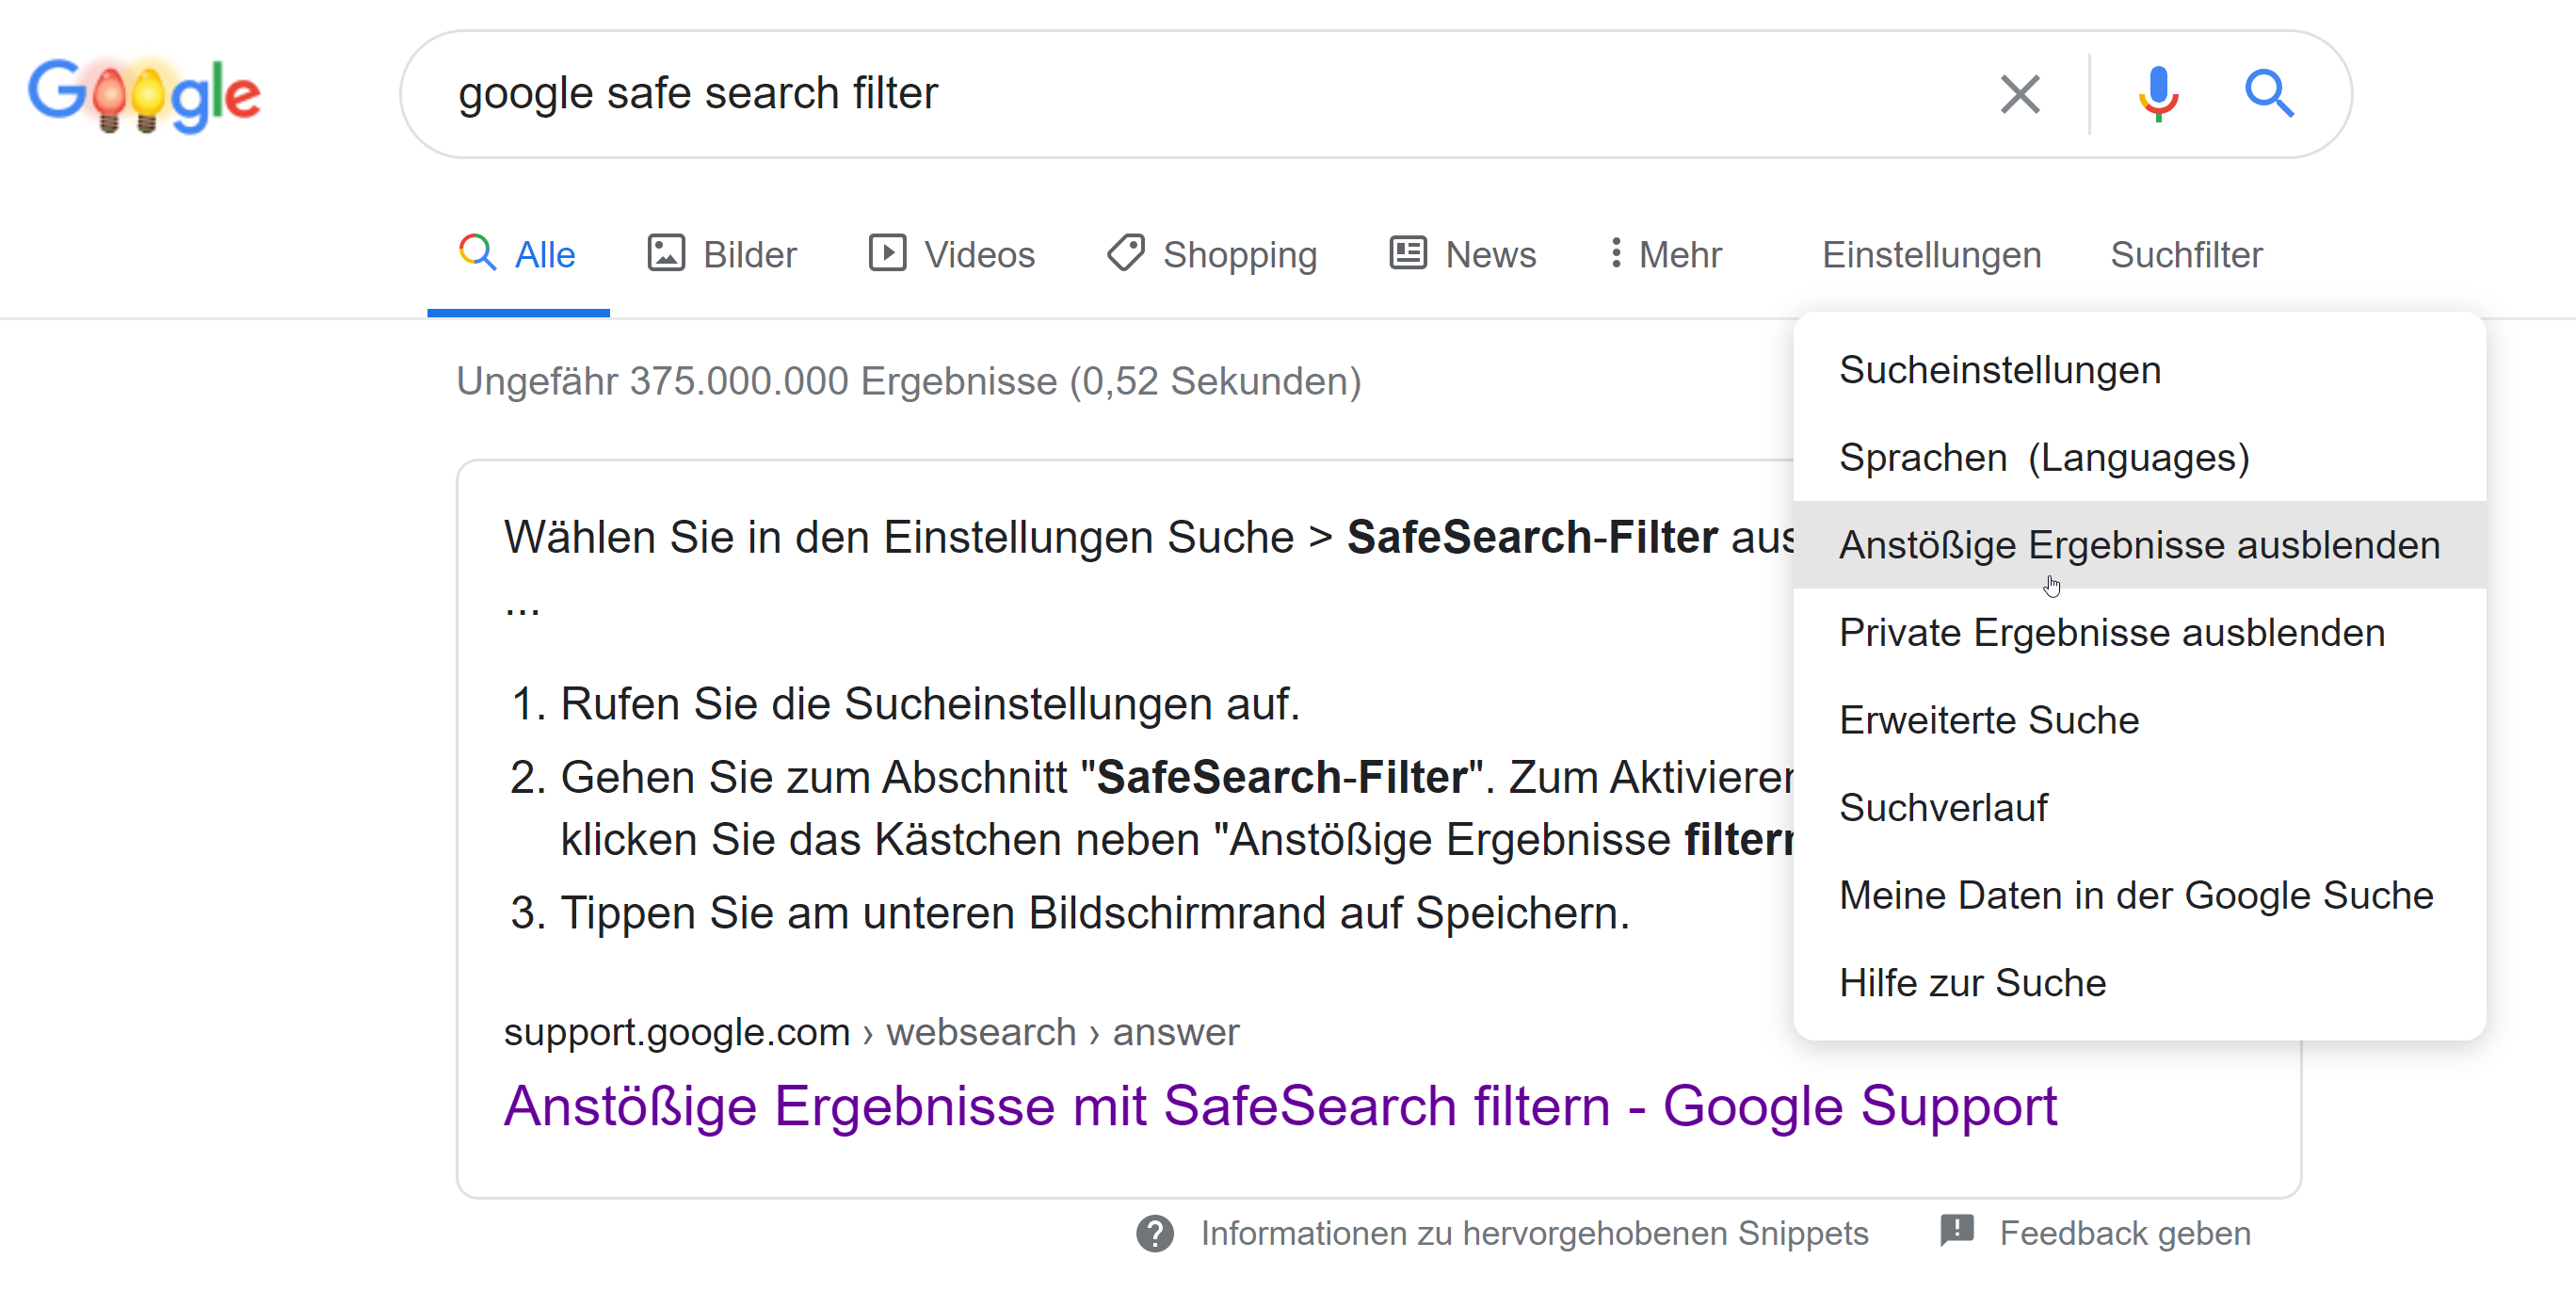 Google Safe Search Filter